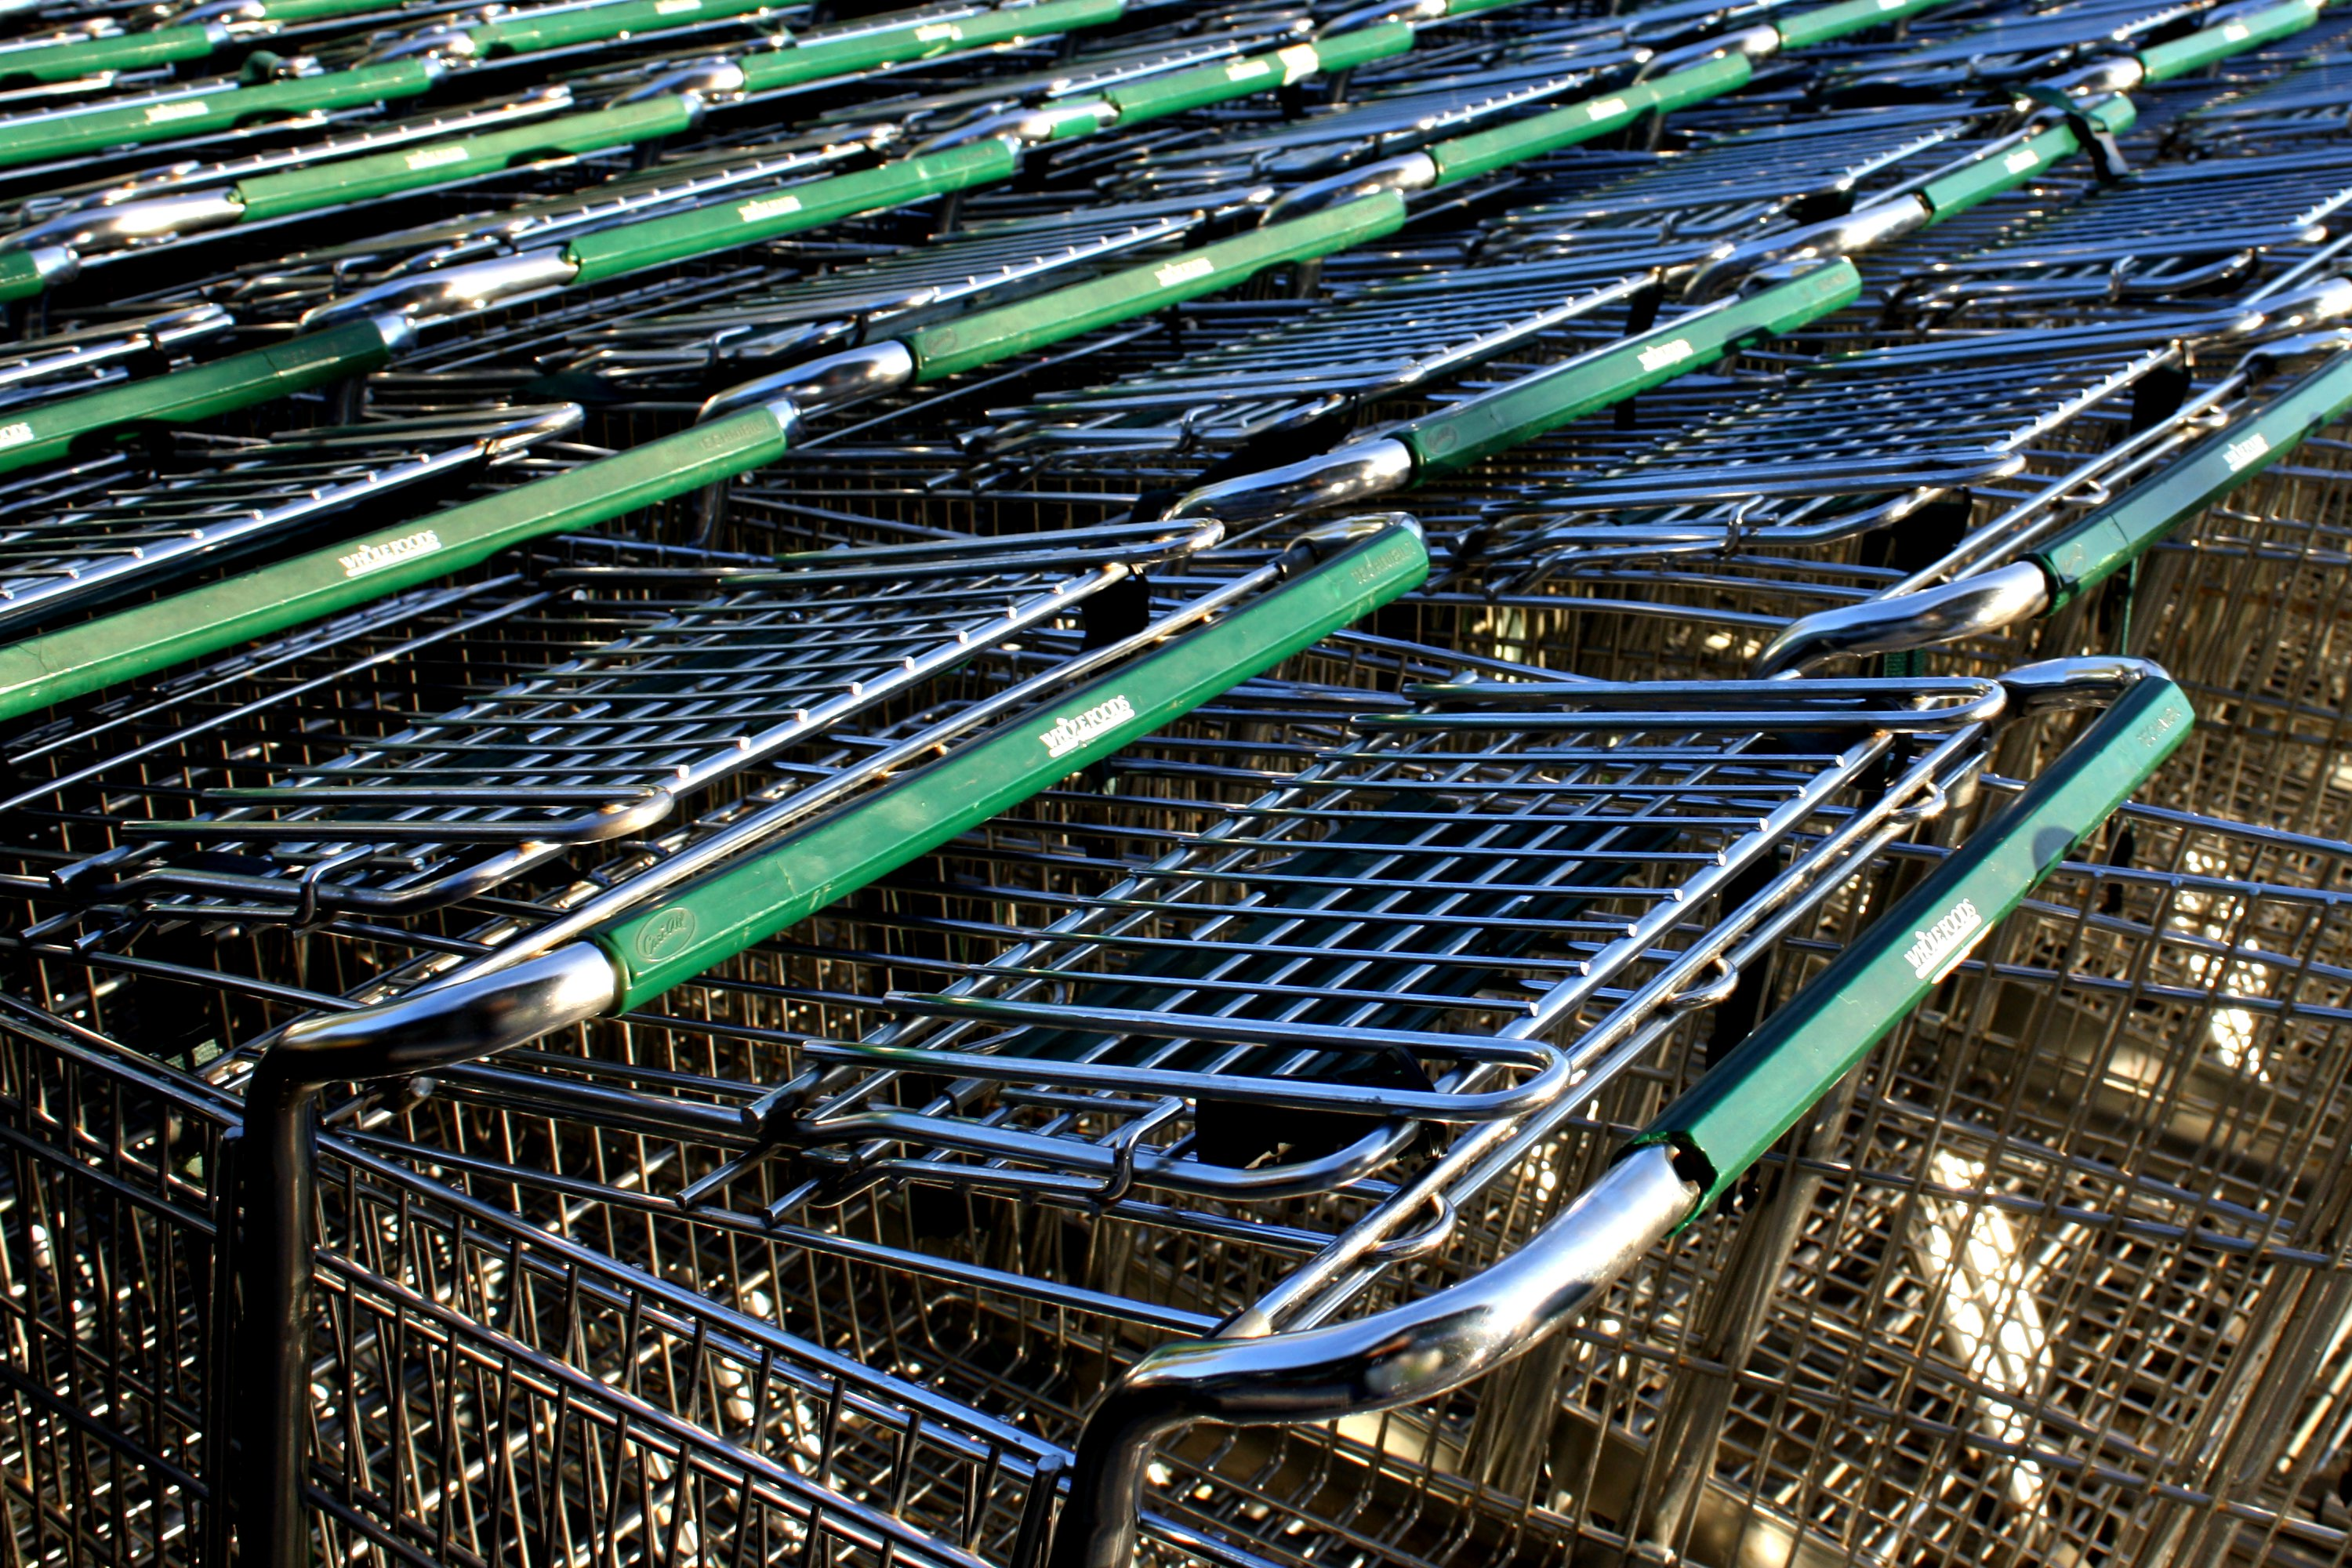 Grocery Carts Picture | Free Photograph | Photos Public Domain